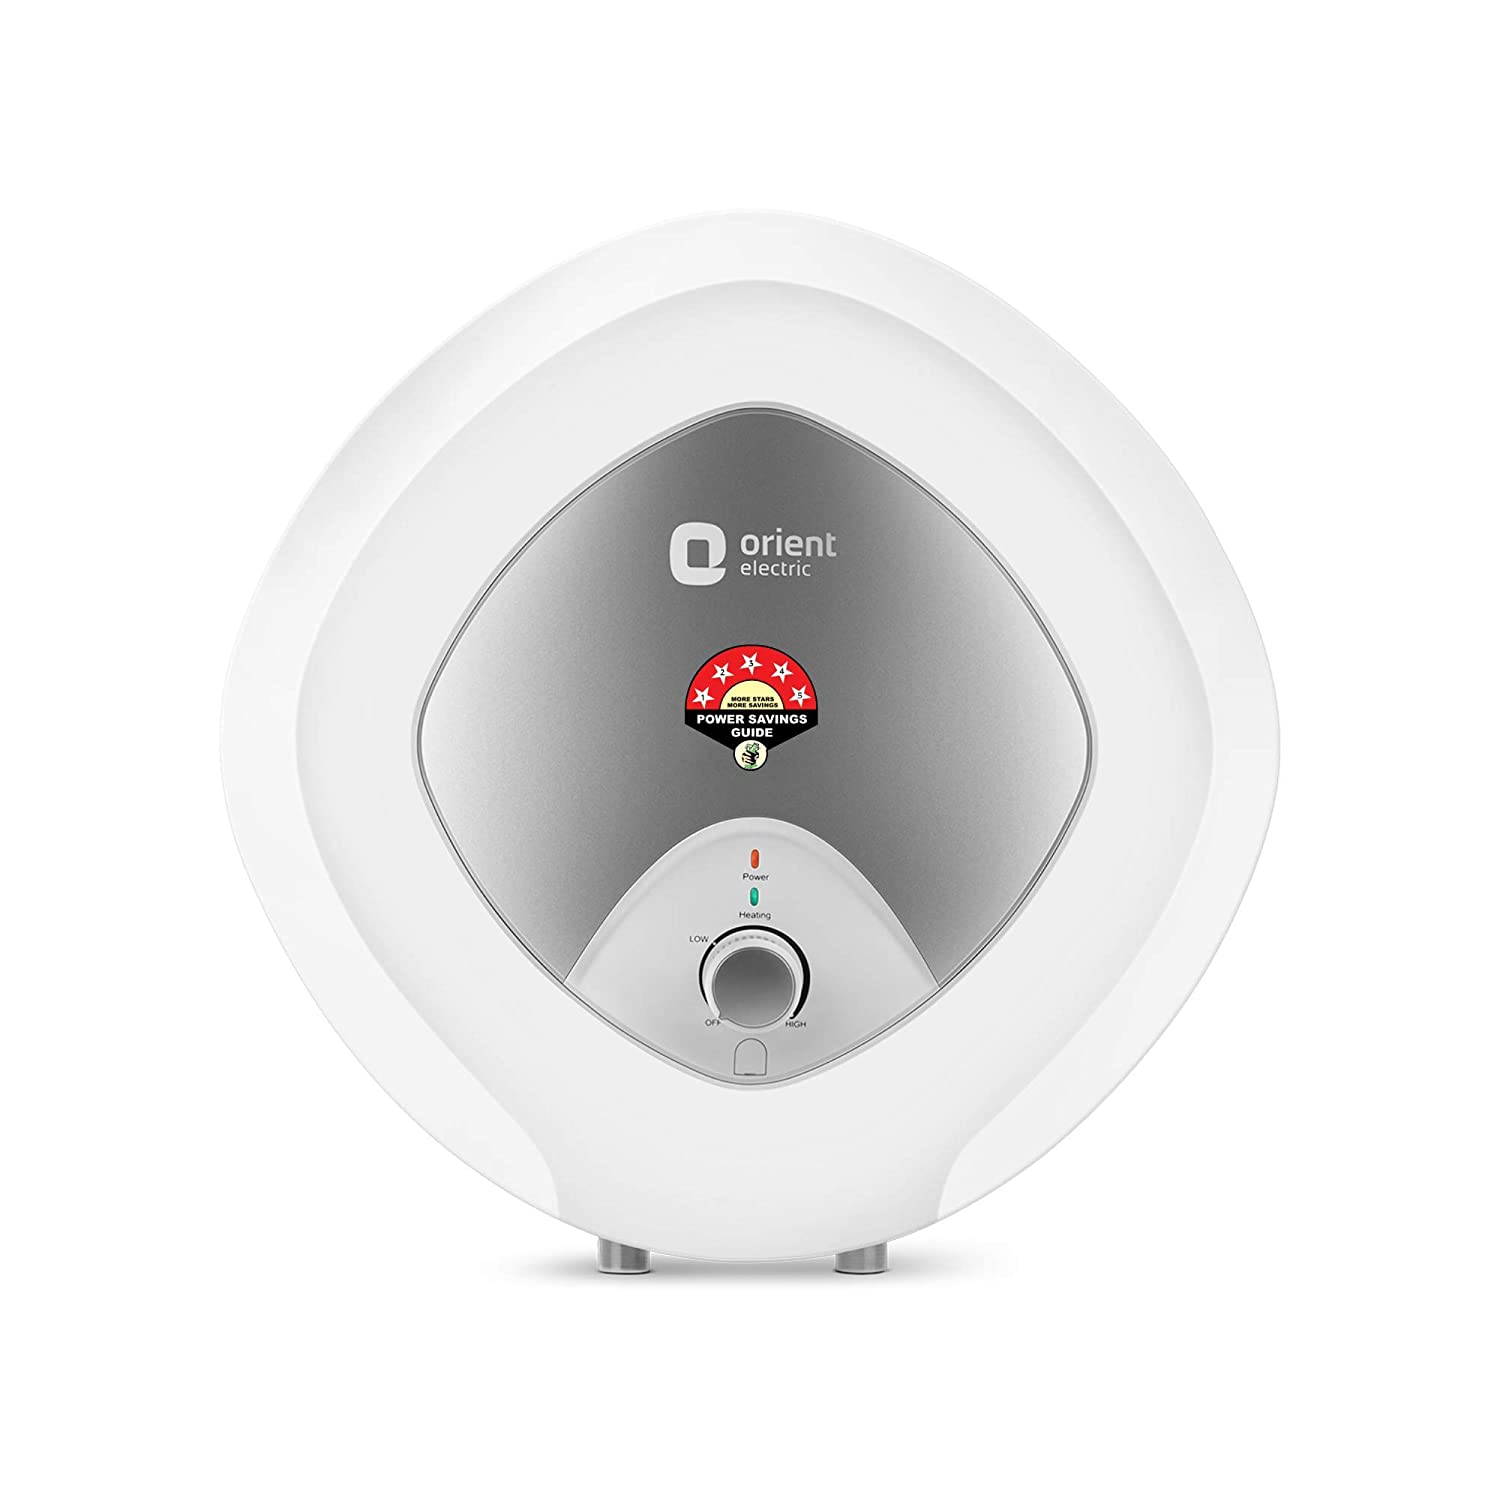 Orient Electric Enamour Plus Water Heater